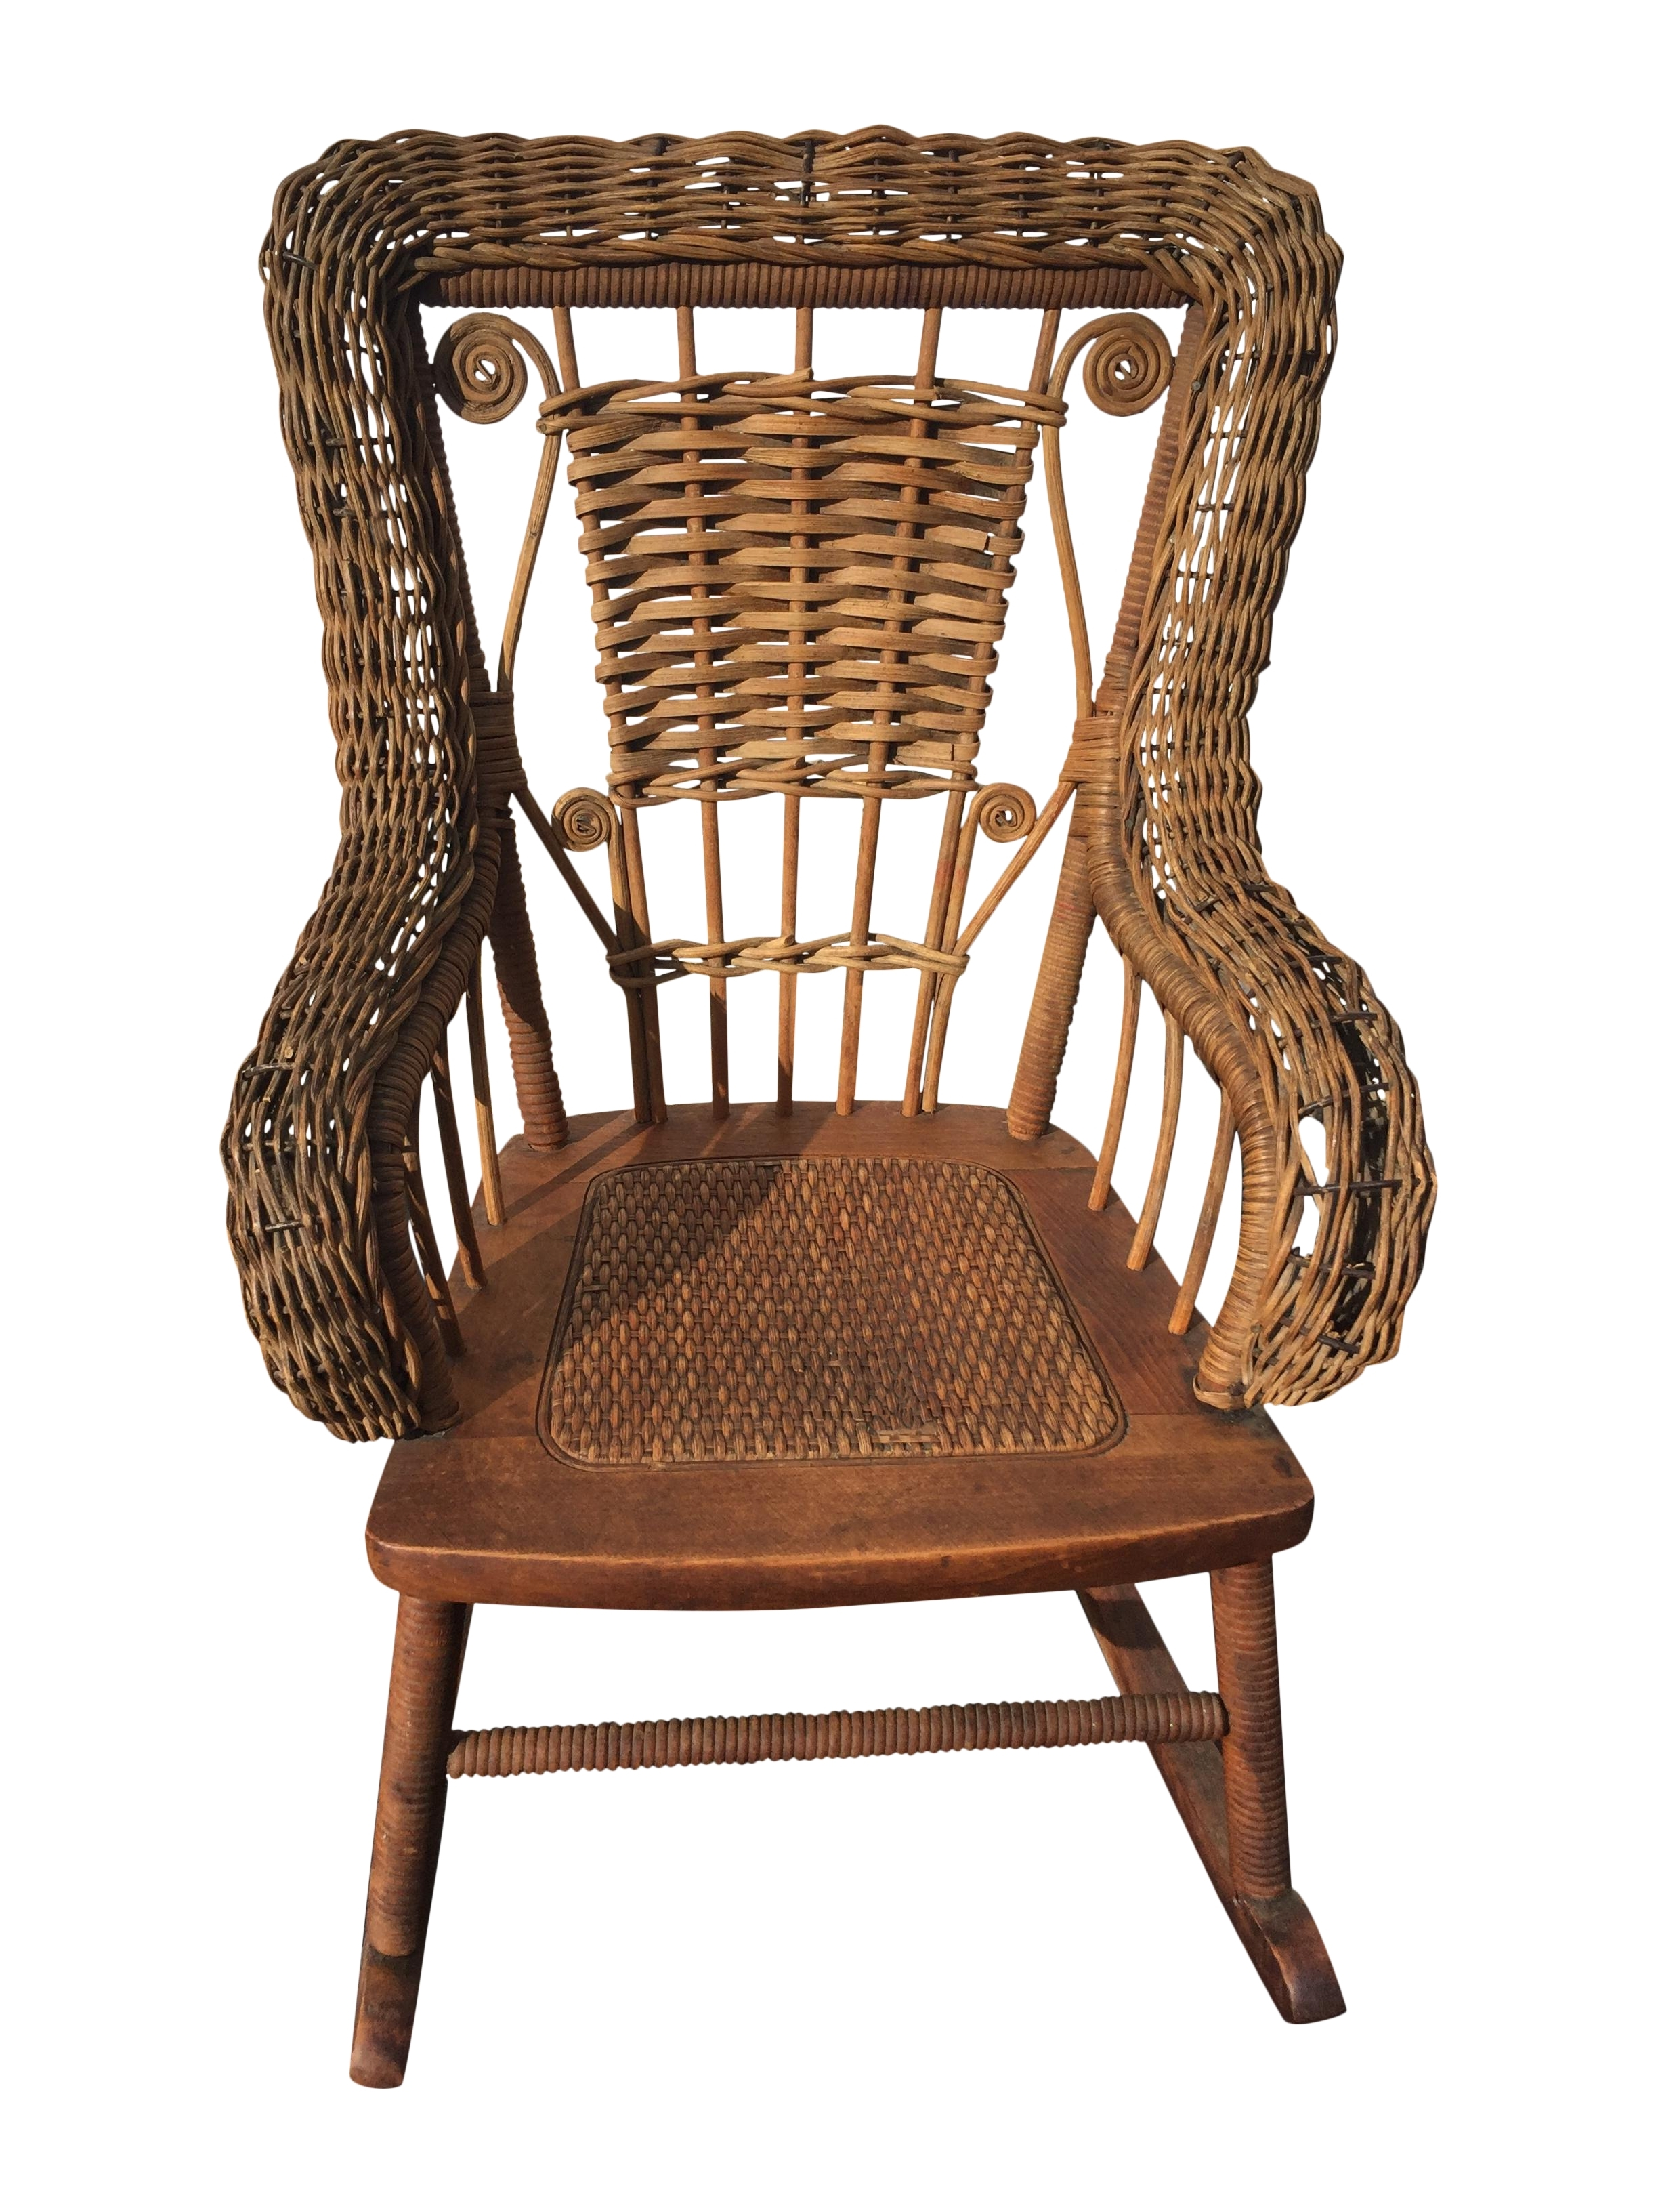 Well Liked Antique Wicker Rocking Chairs With Springs For Chair Design  Ideas Best Vintage Wicker Chairs